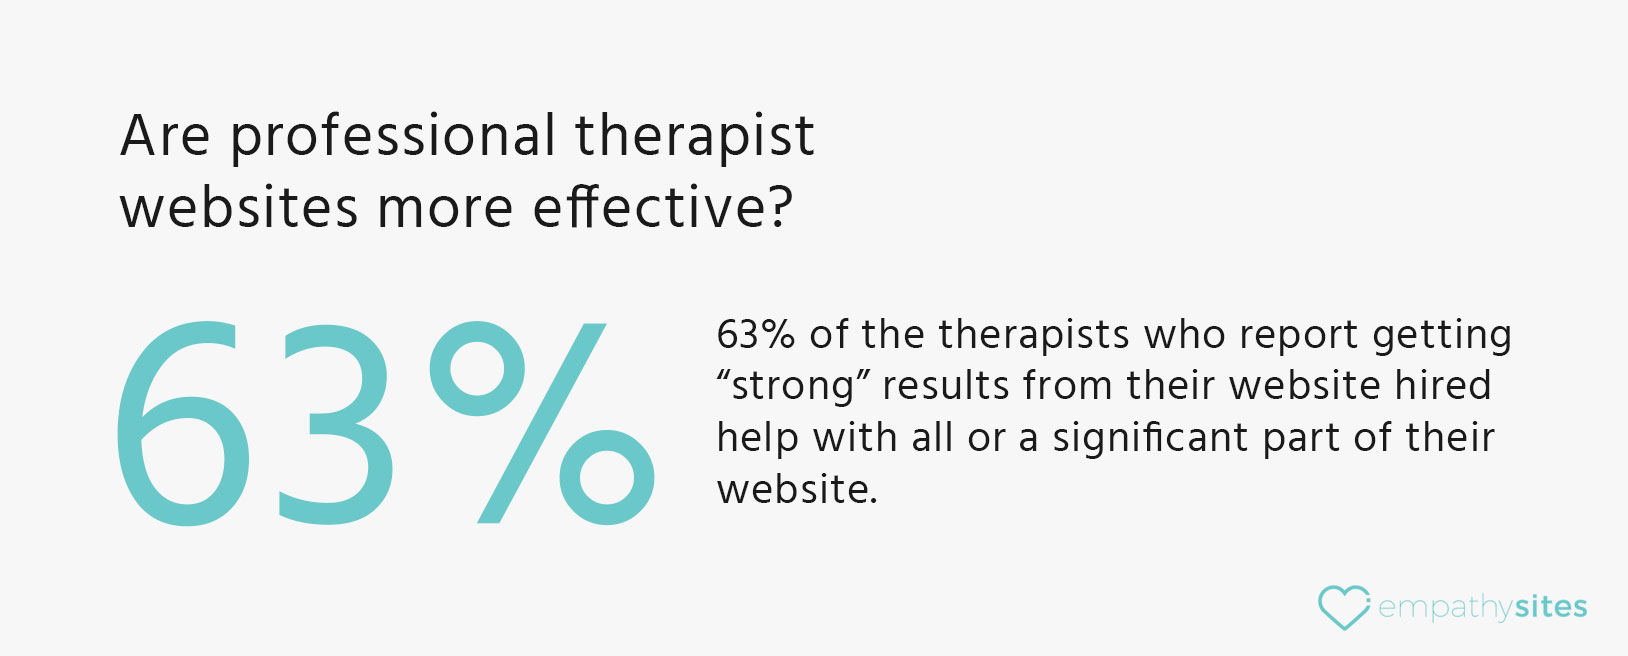 empathysites-therapist-website-data-professional-effective